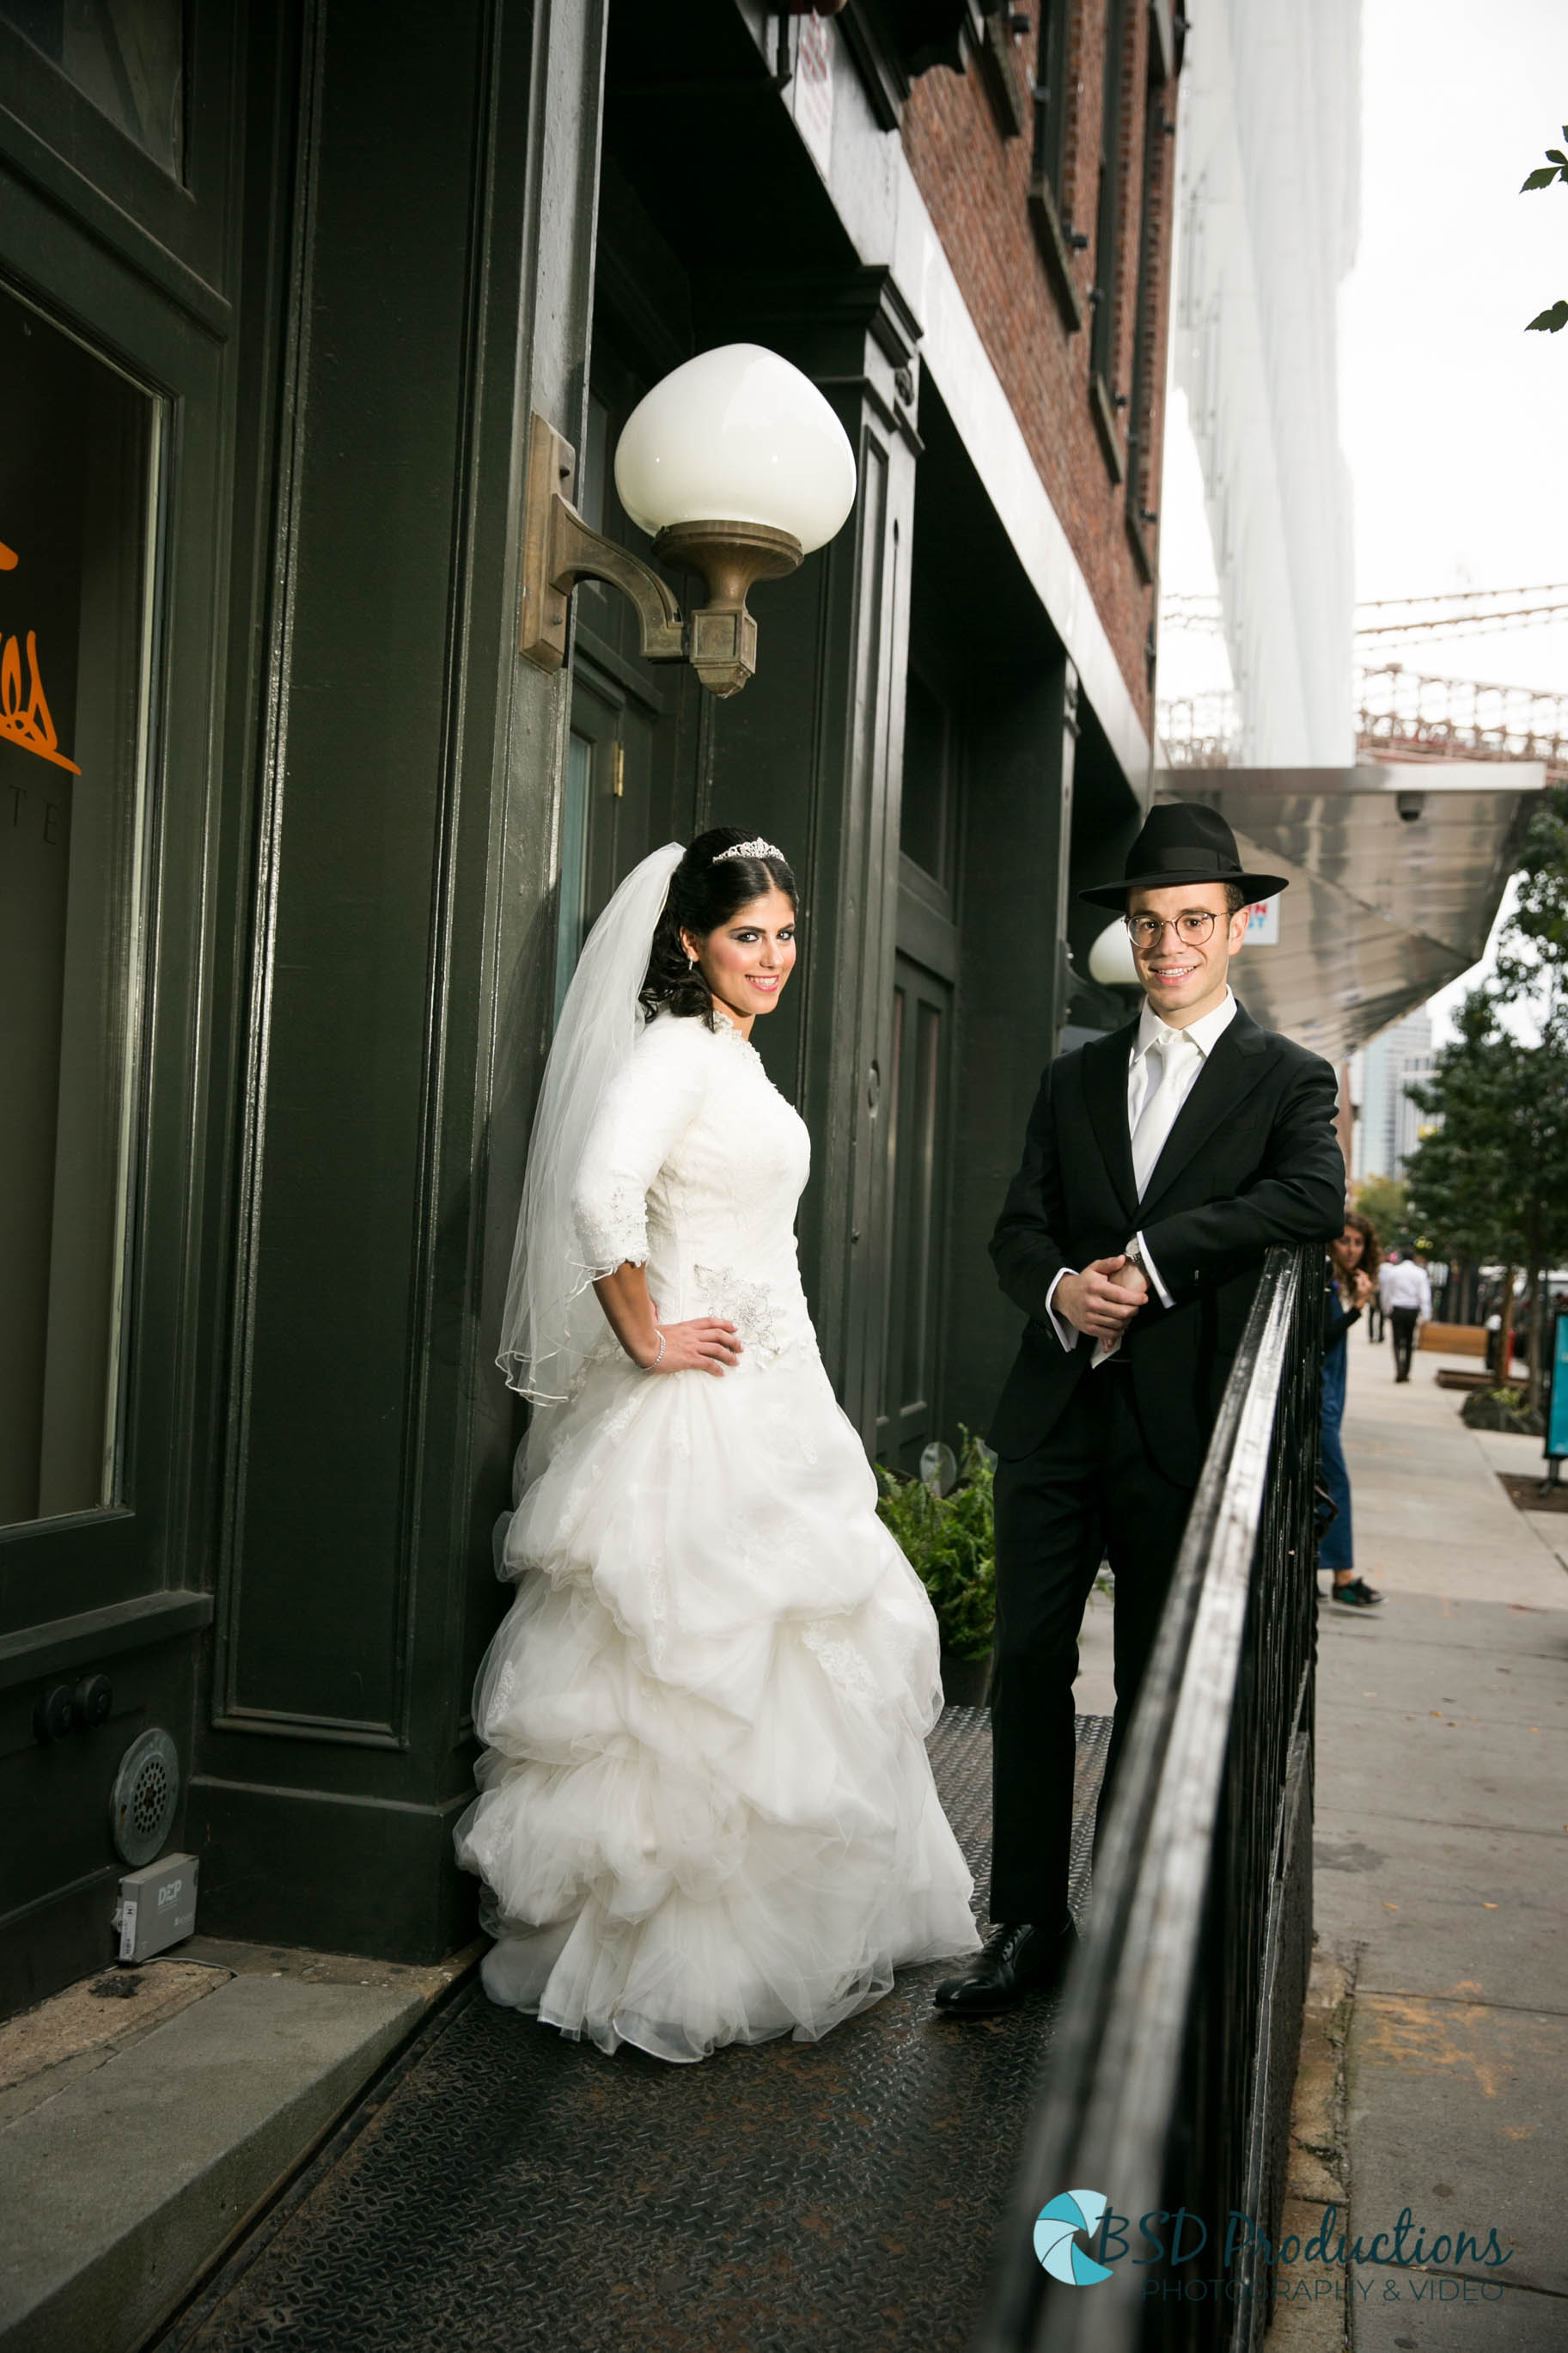 UH5A0279 Wedding – BSD Productions Photography